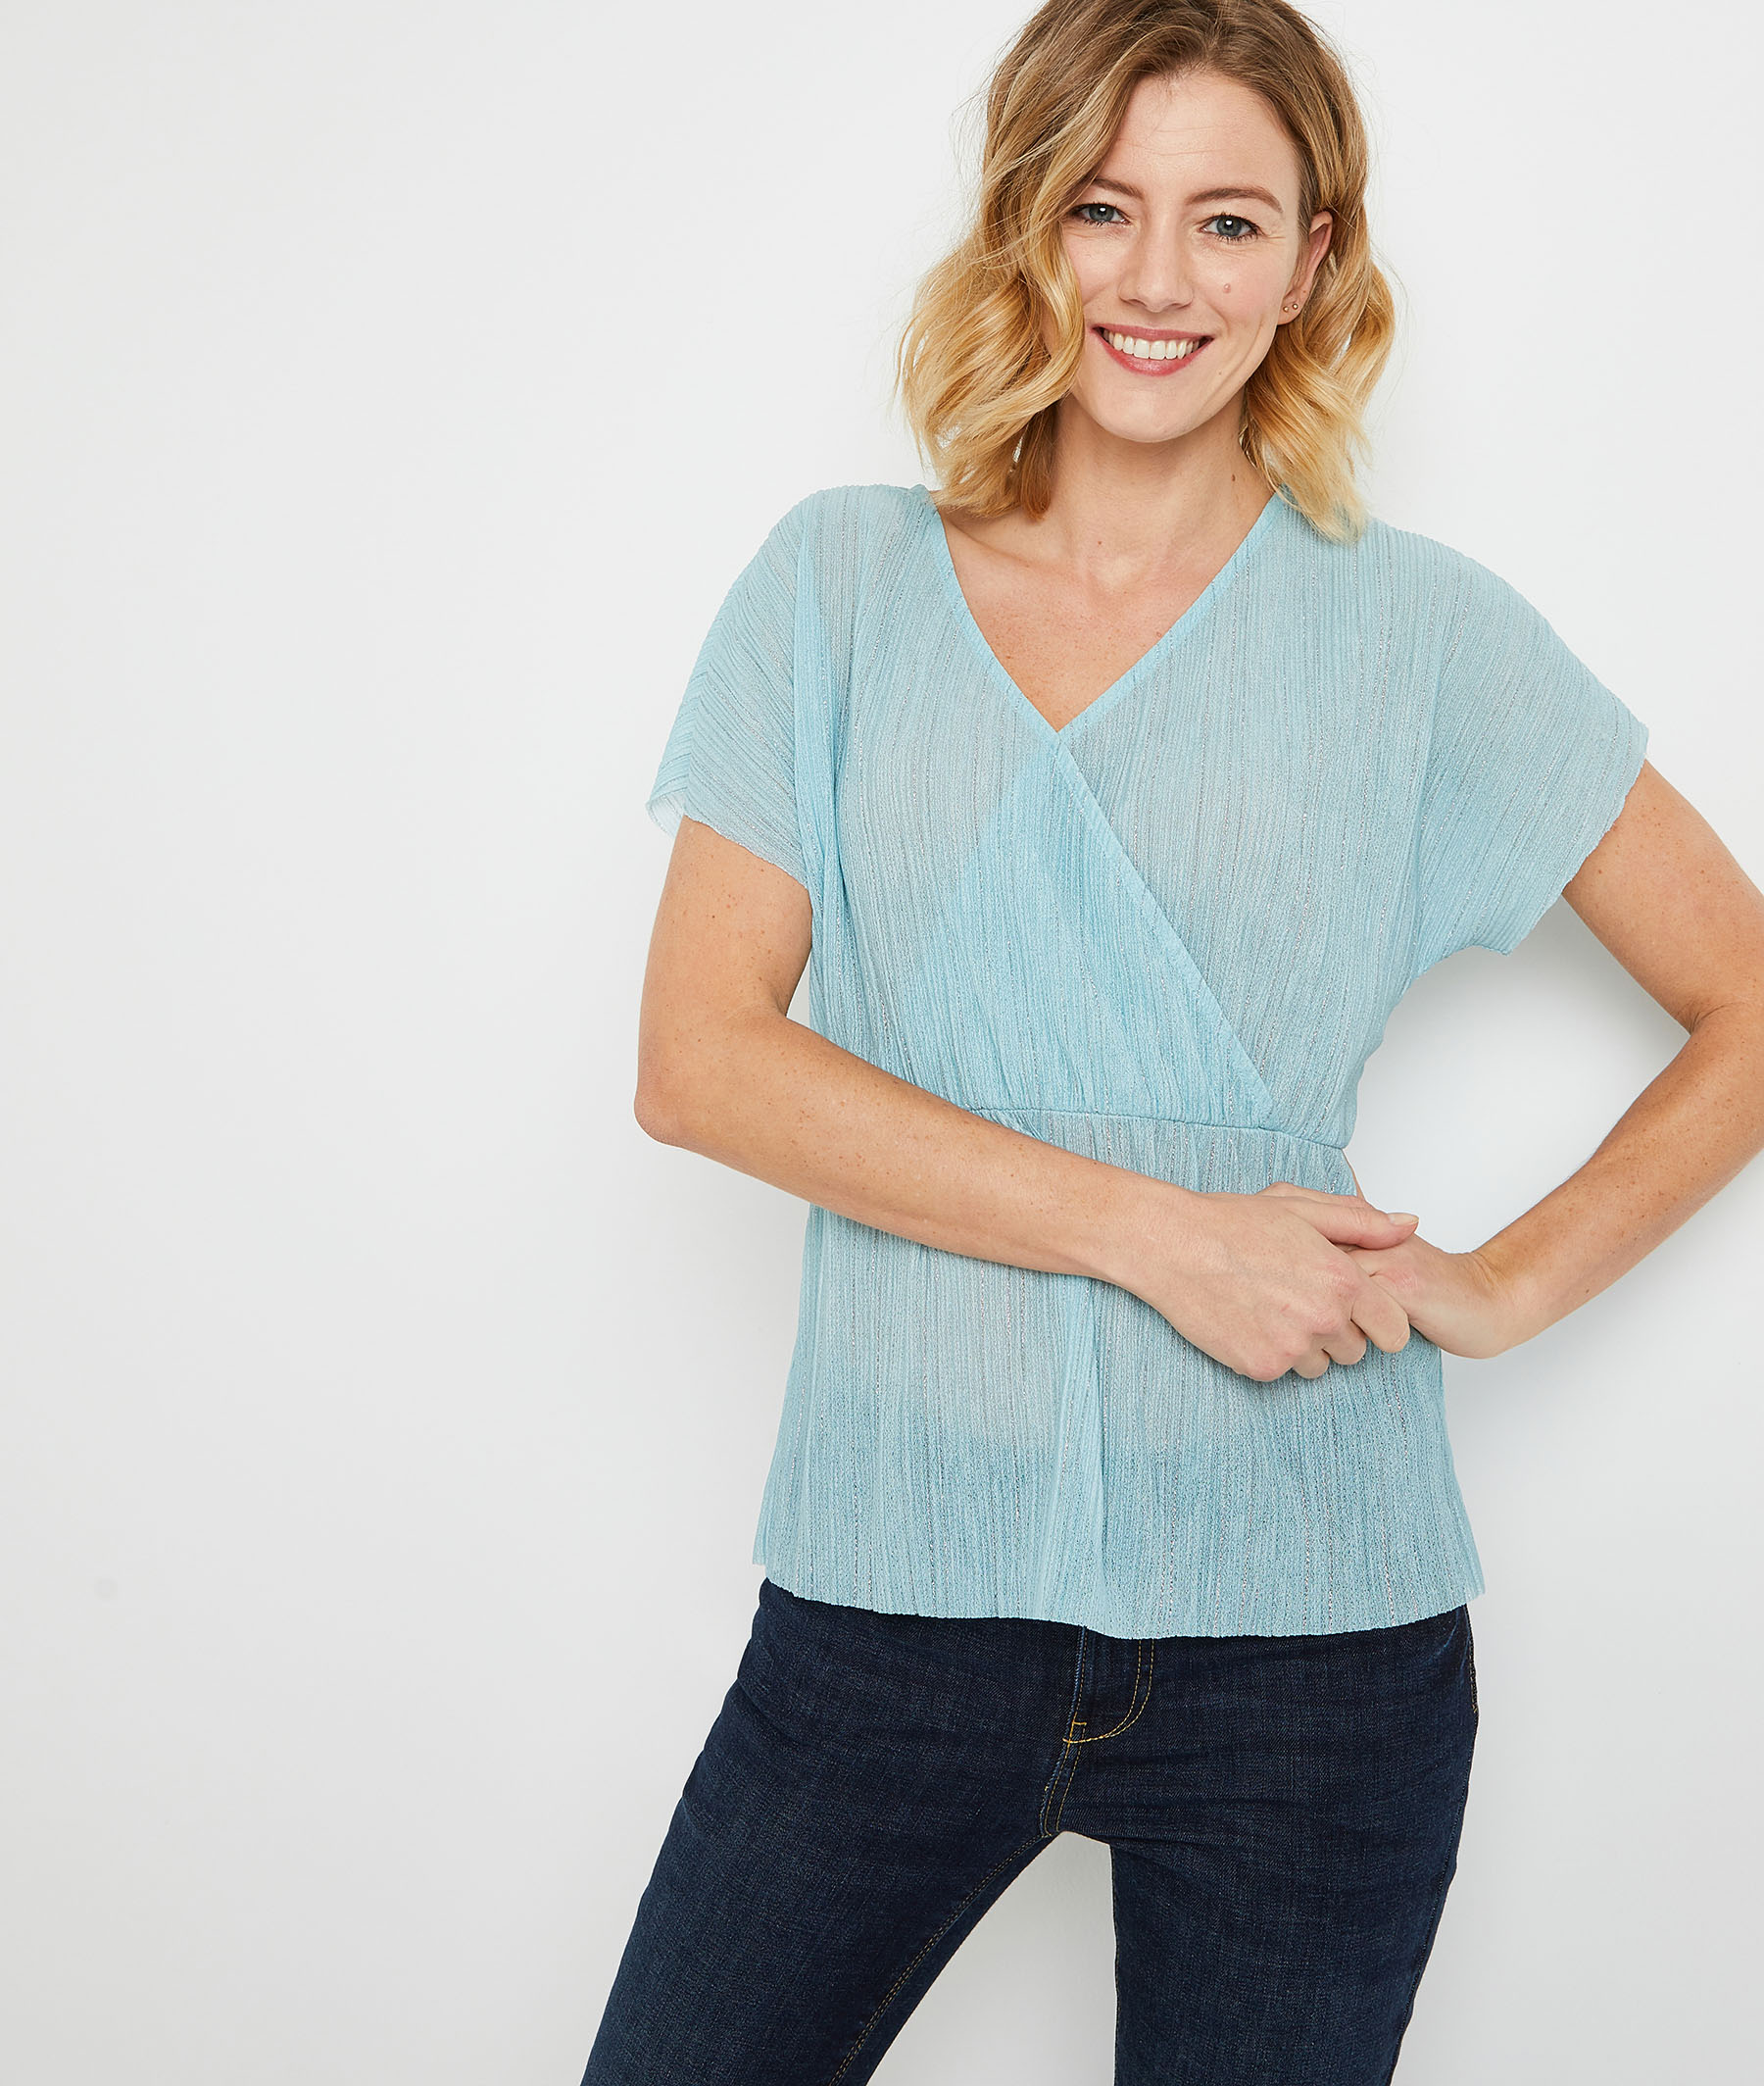 Top cache-coeur turquoise femme TURQUOISE